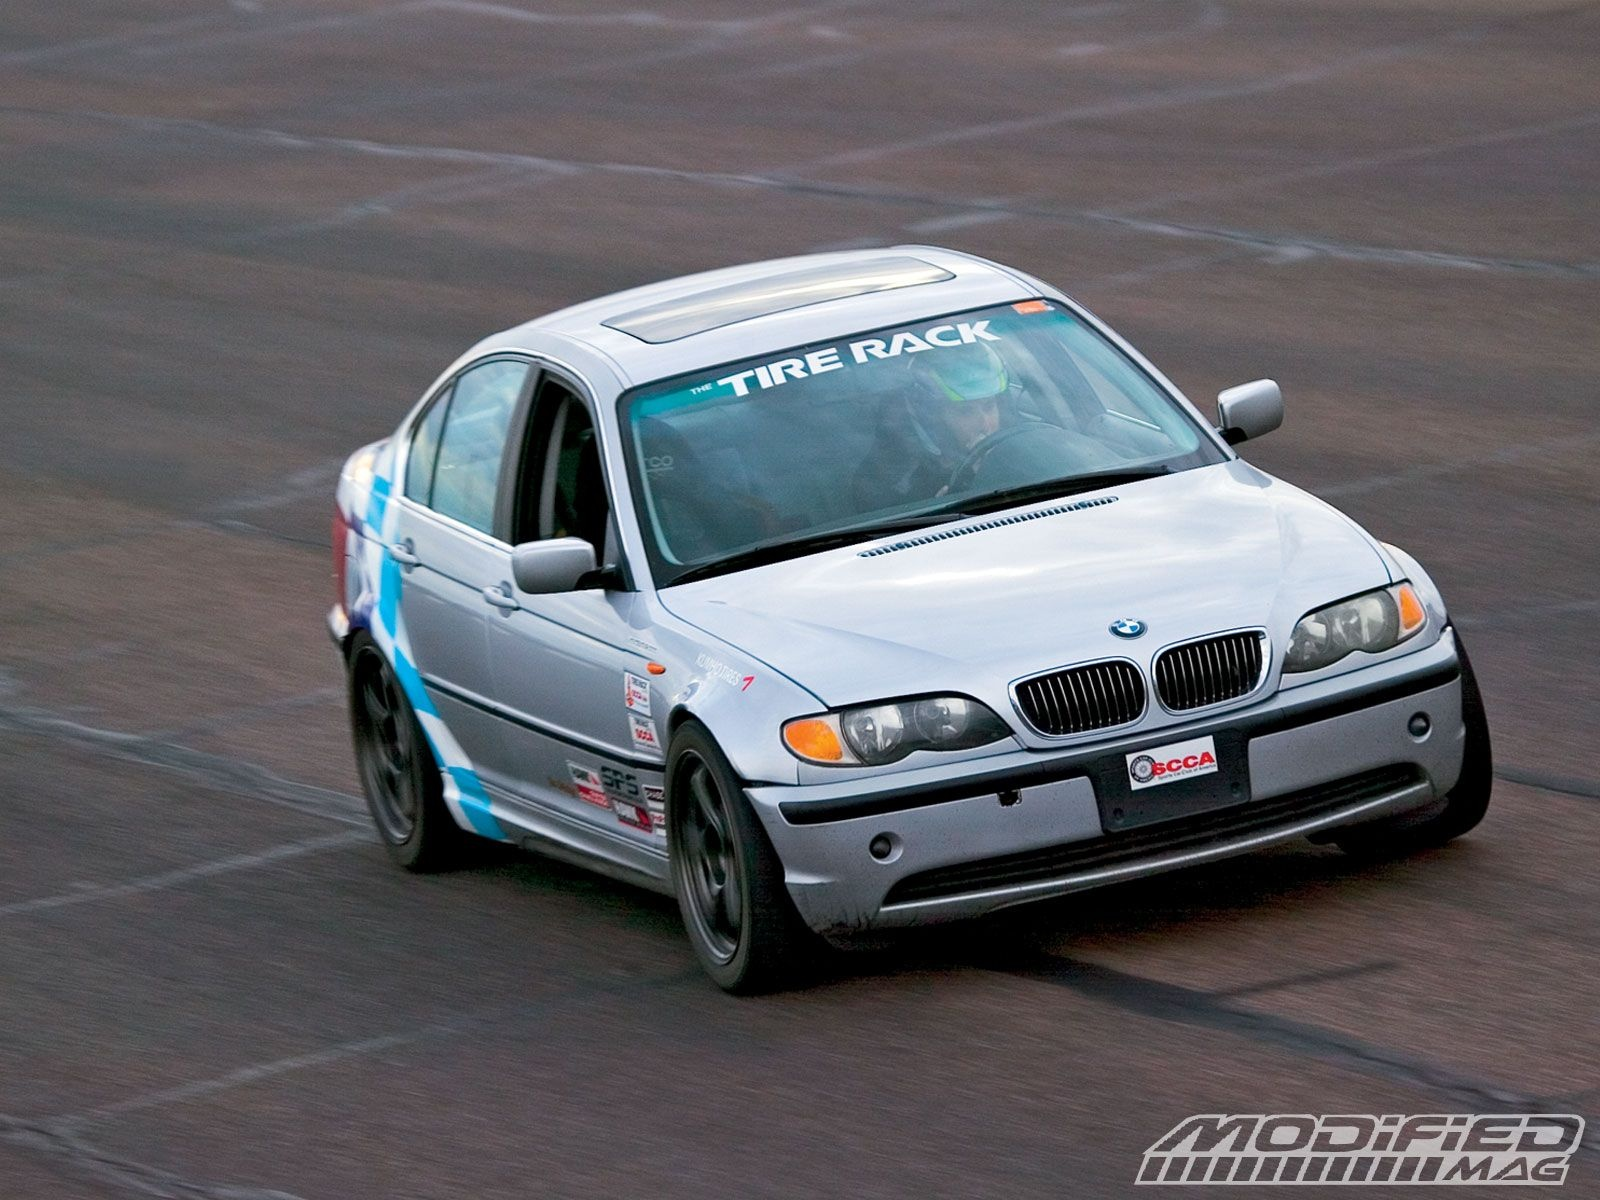 2003 Bmw 325i Modified Inspirational Doug Rowses 2003 Bmw 330i E46 Road Racing Modified Magazine Of Beautiful 2003 Bmw 325i Modified